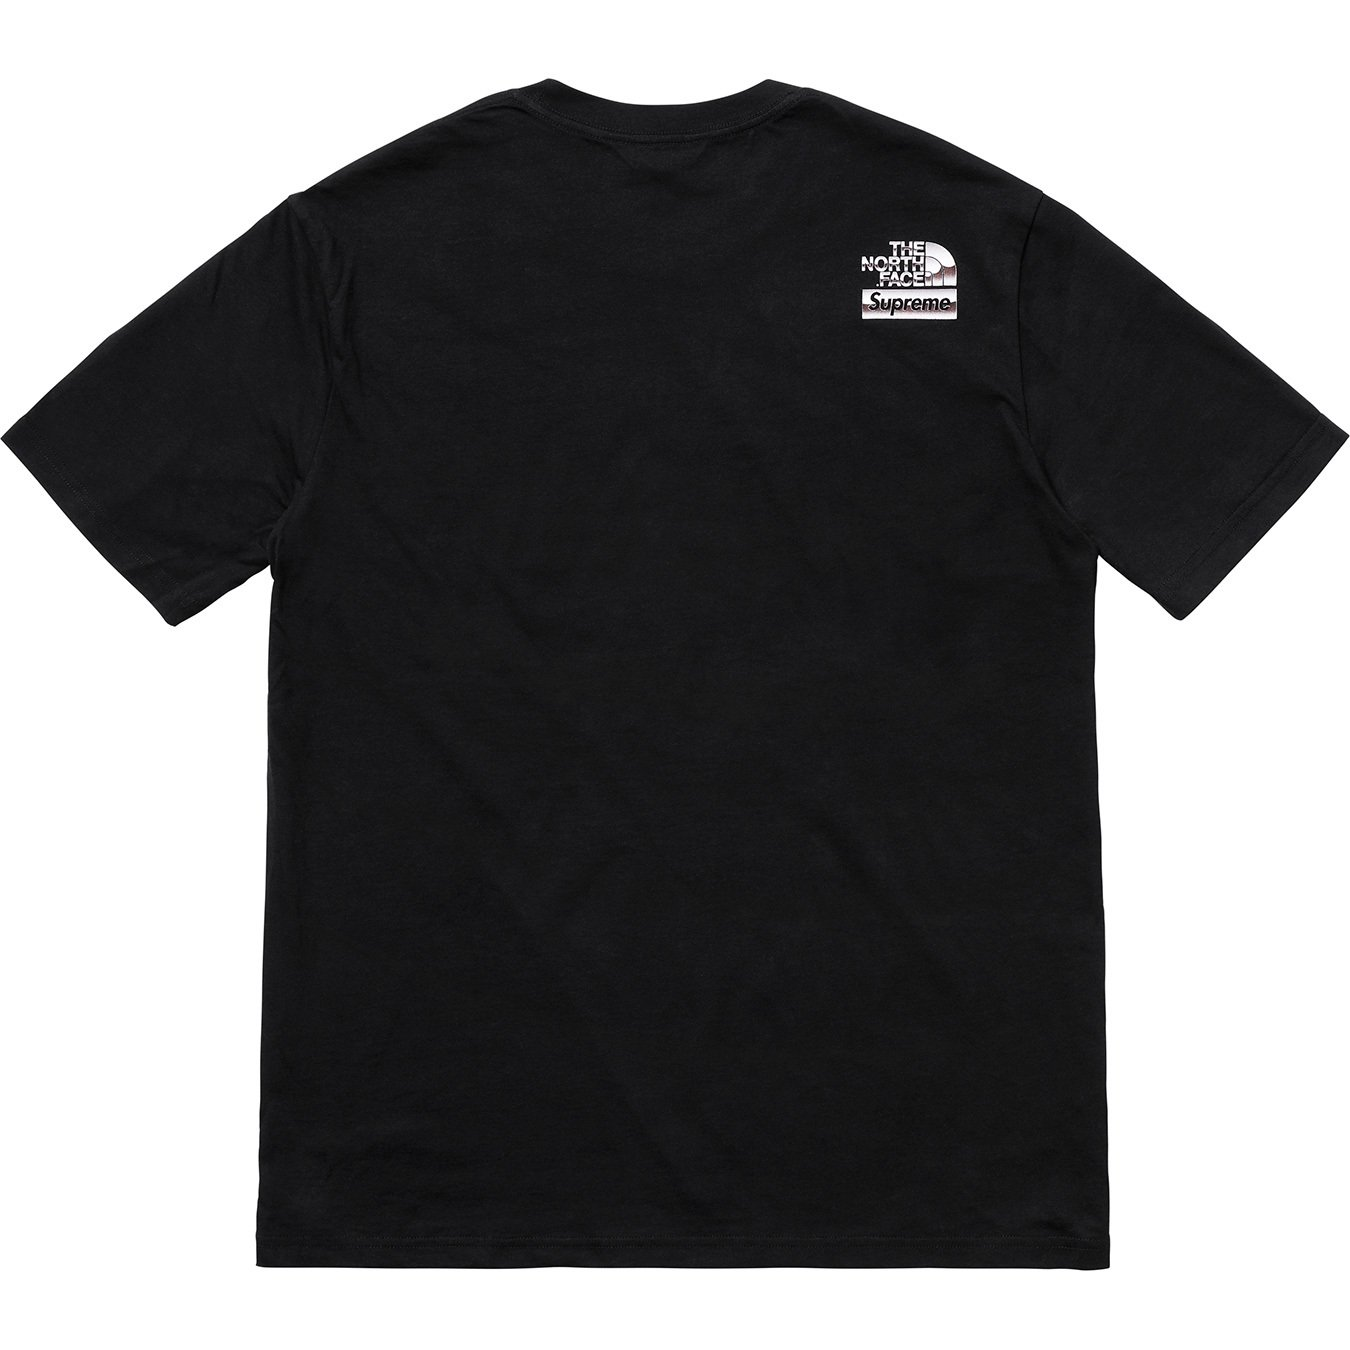 supreme-the-north-face-18ss-release-week7-20180407-metallic-logo-t-shirt